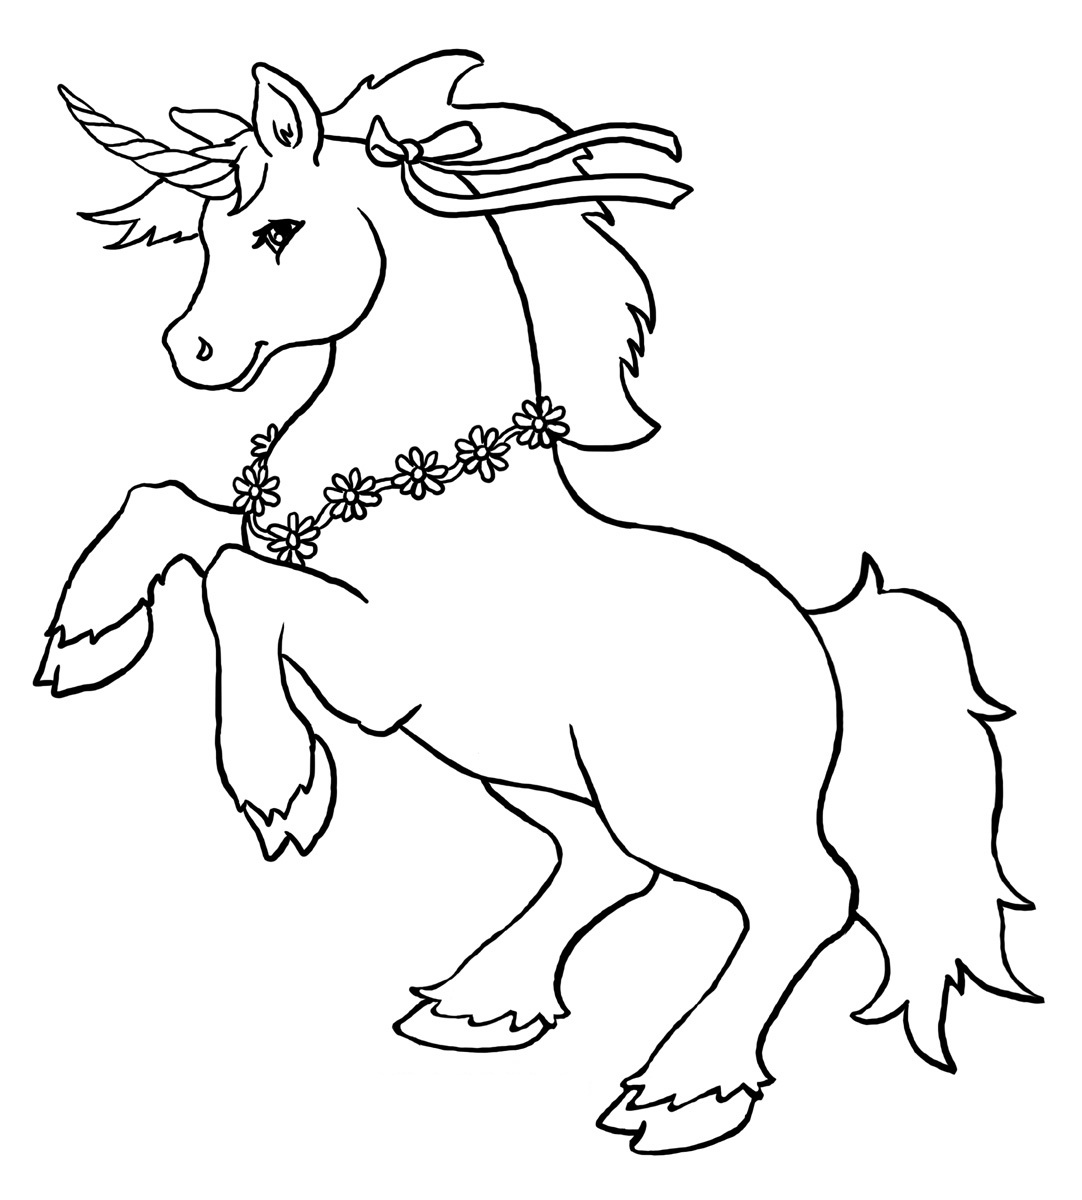 1082x1200 Cute Coloring Pages Cute Unicorn Coloring Pages Kids Coloring Pages